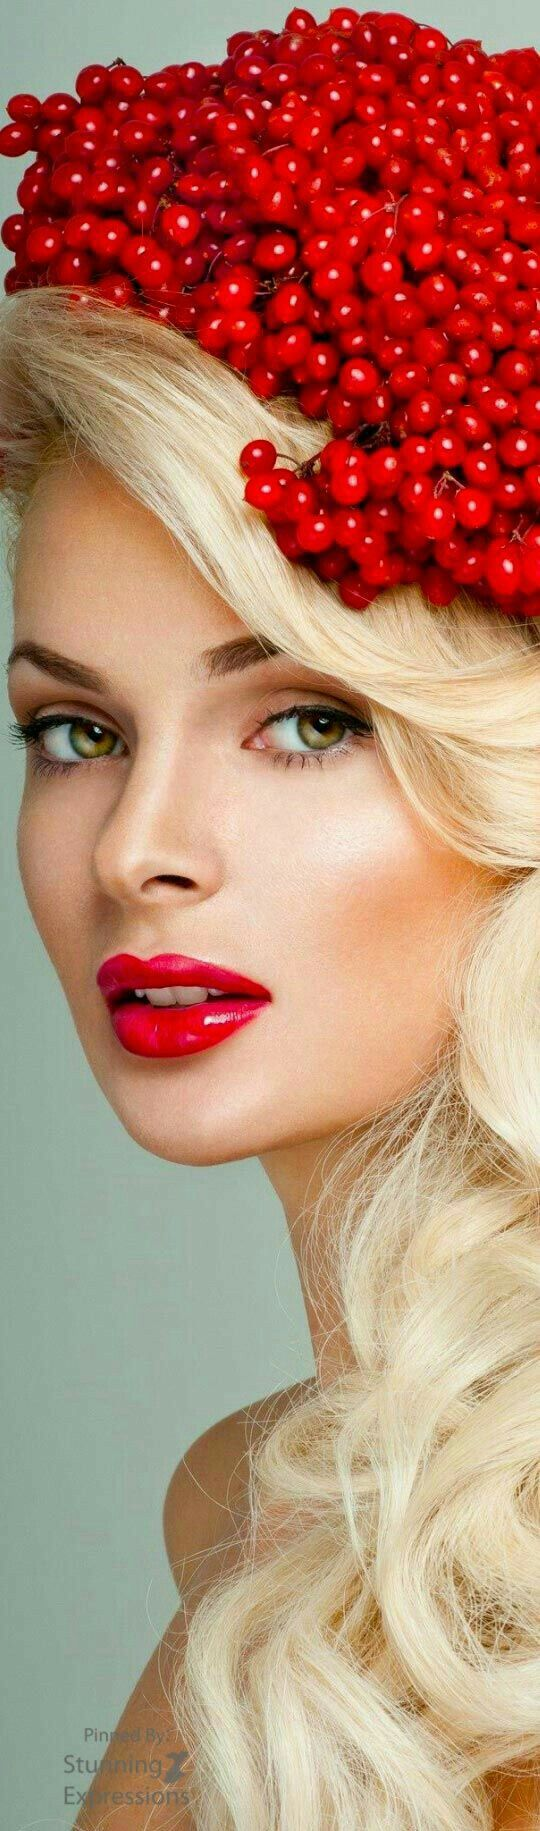 Glam in Red Berries